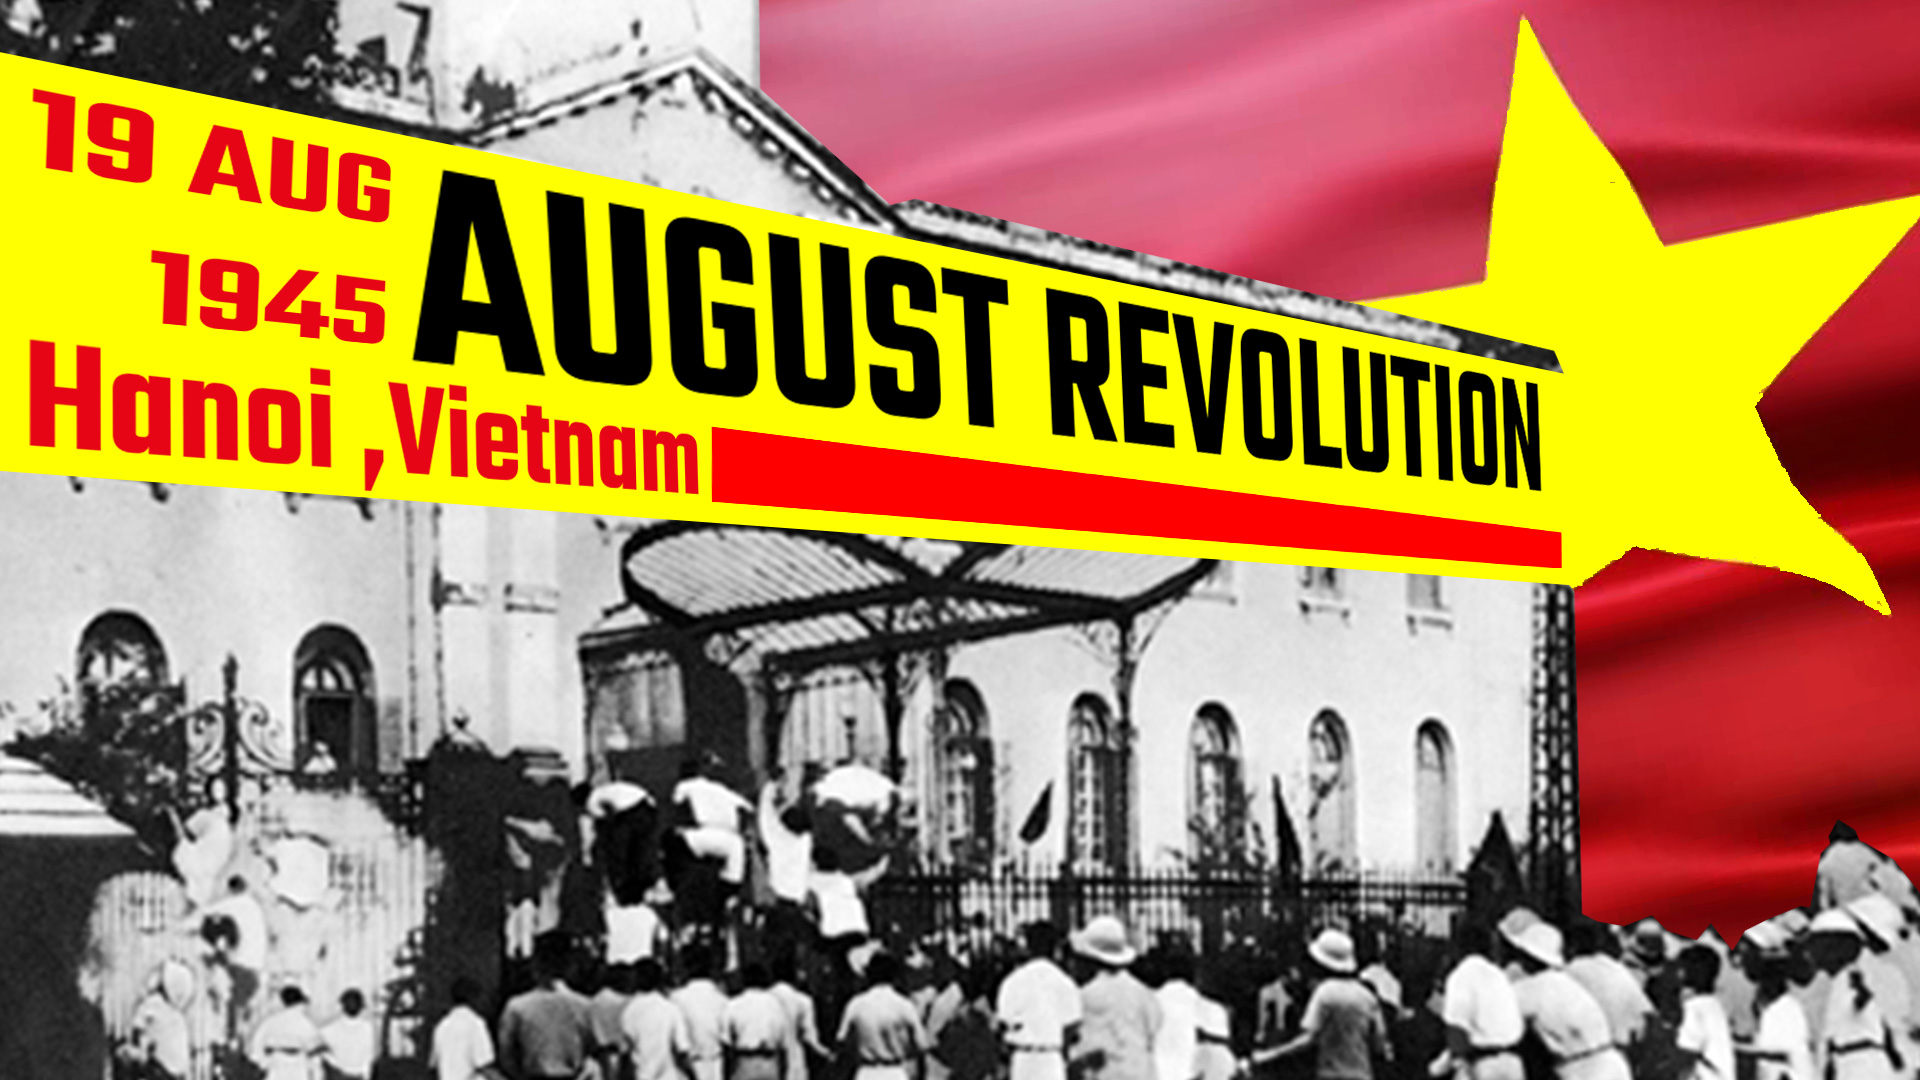 August revolution hanoi, vietnam_Aug19